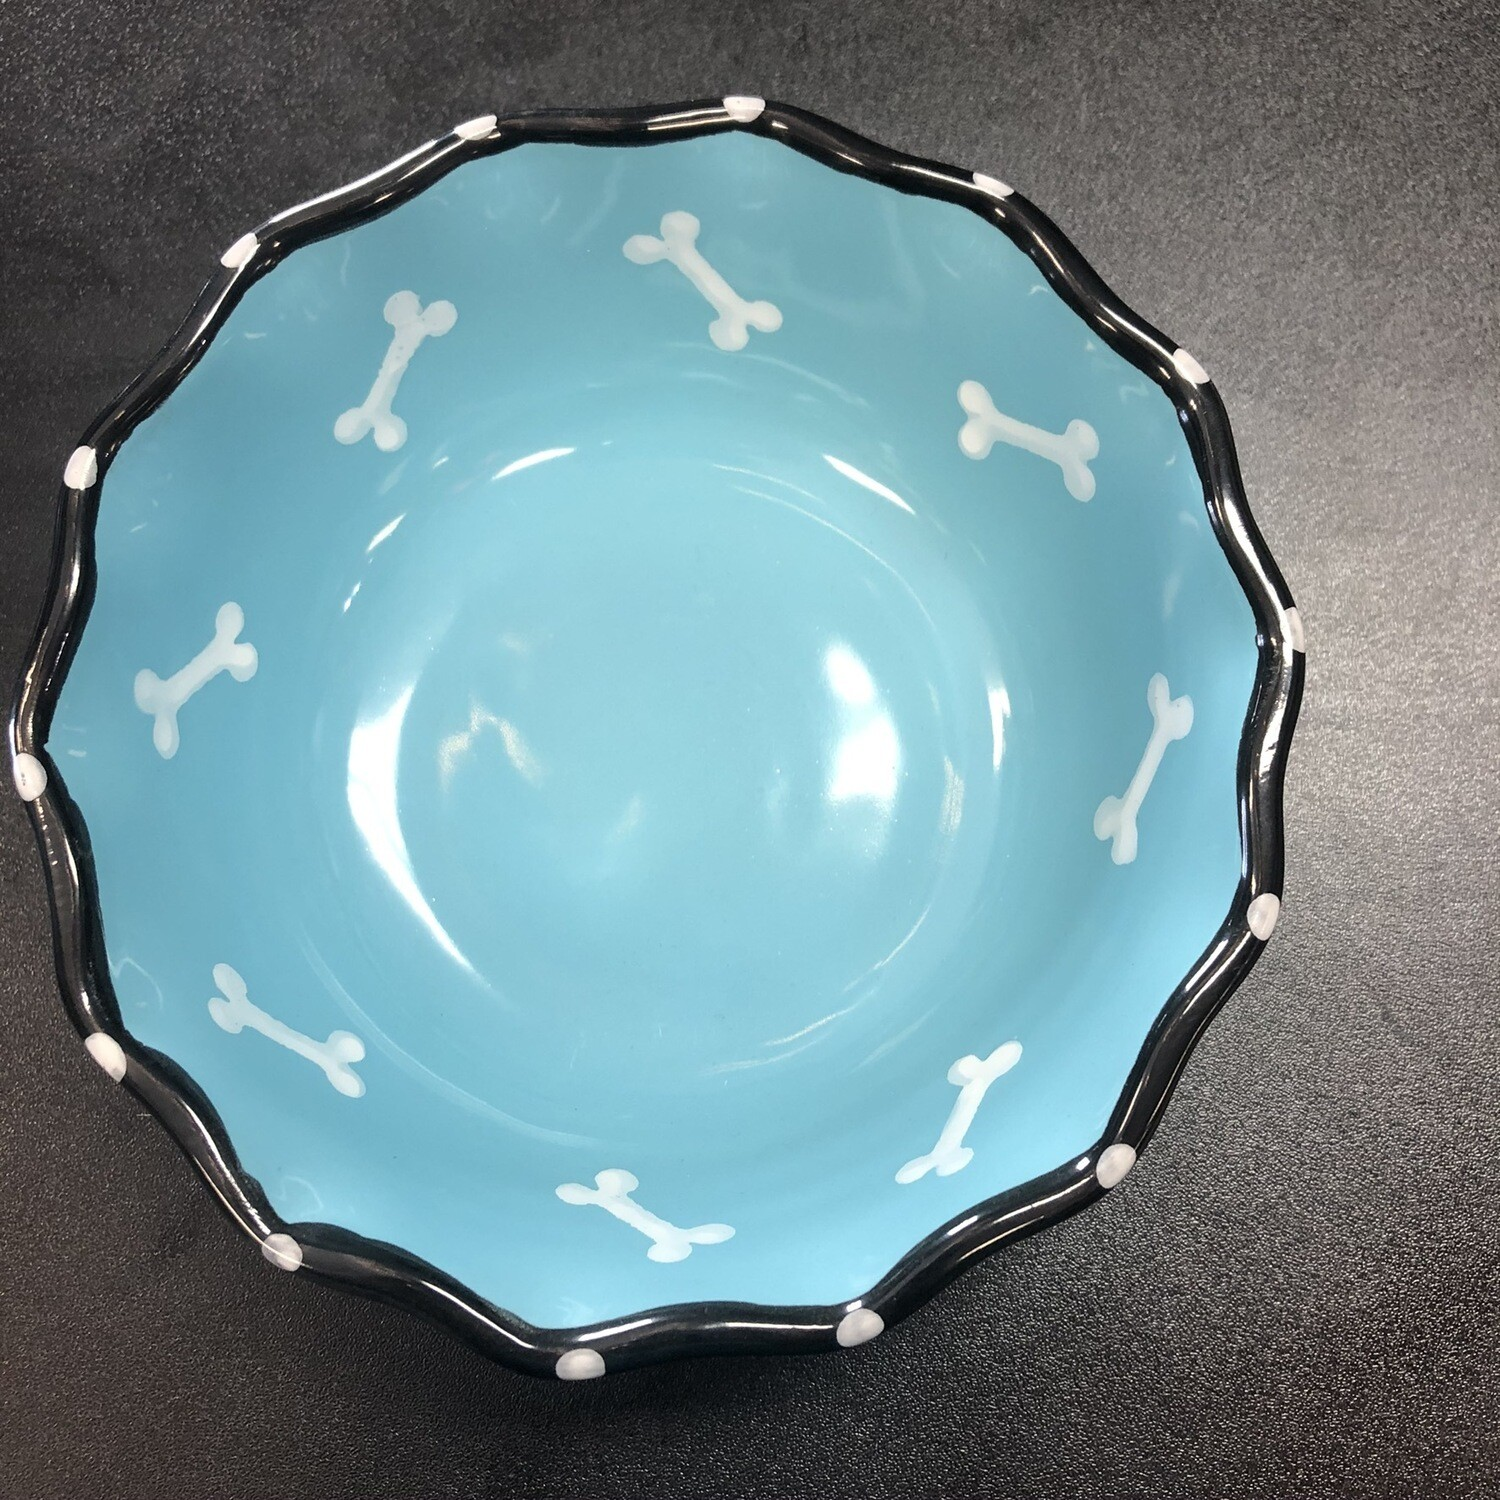 ETH DISH CONTEMPORARY RUFFLE BLUE 7""